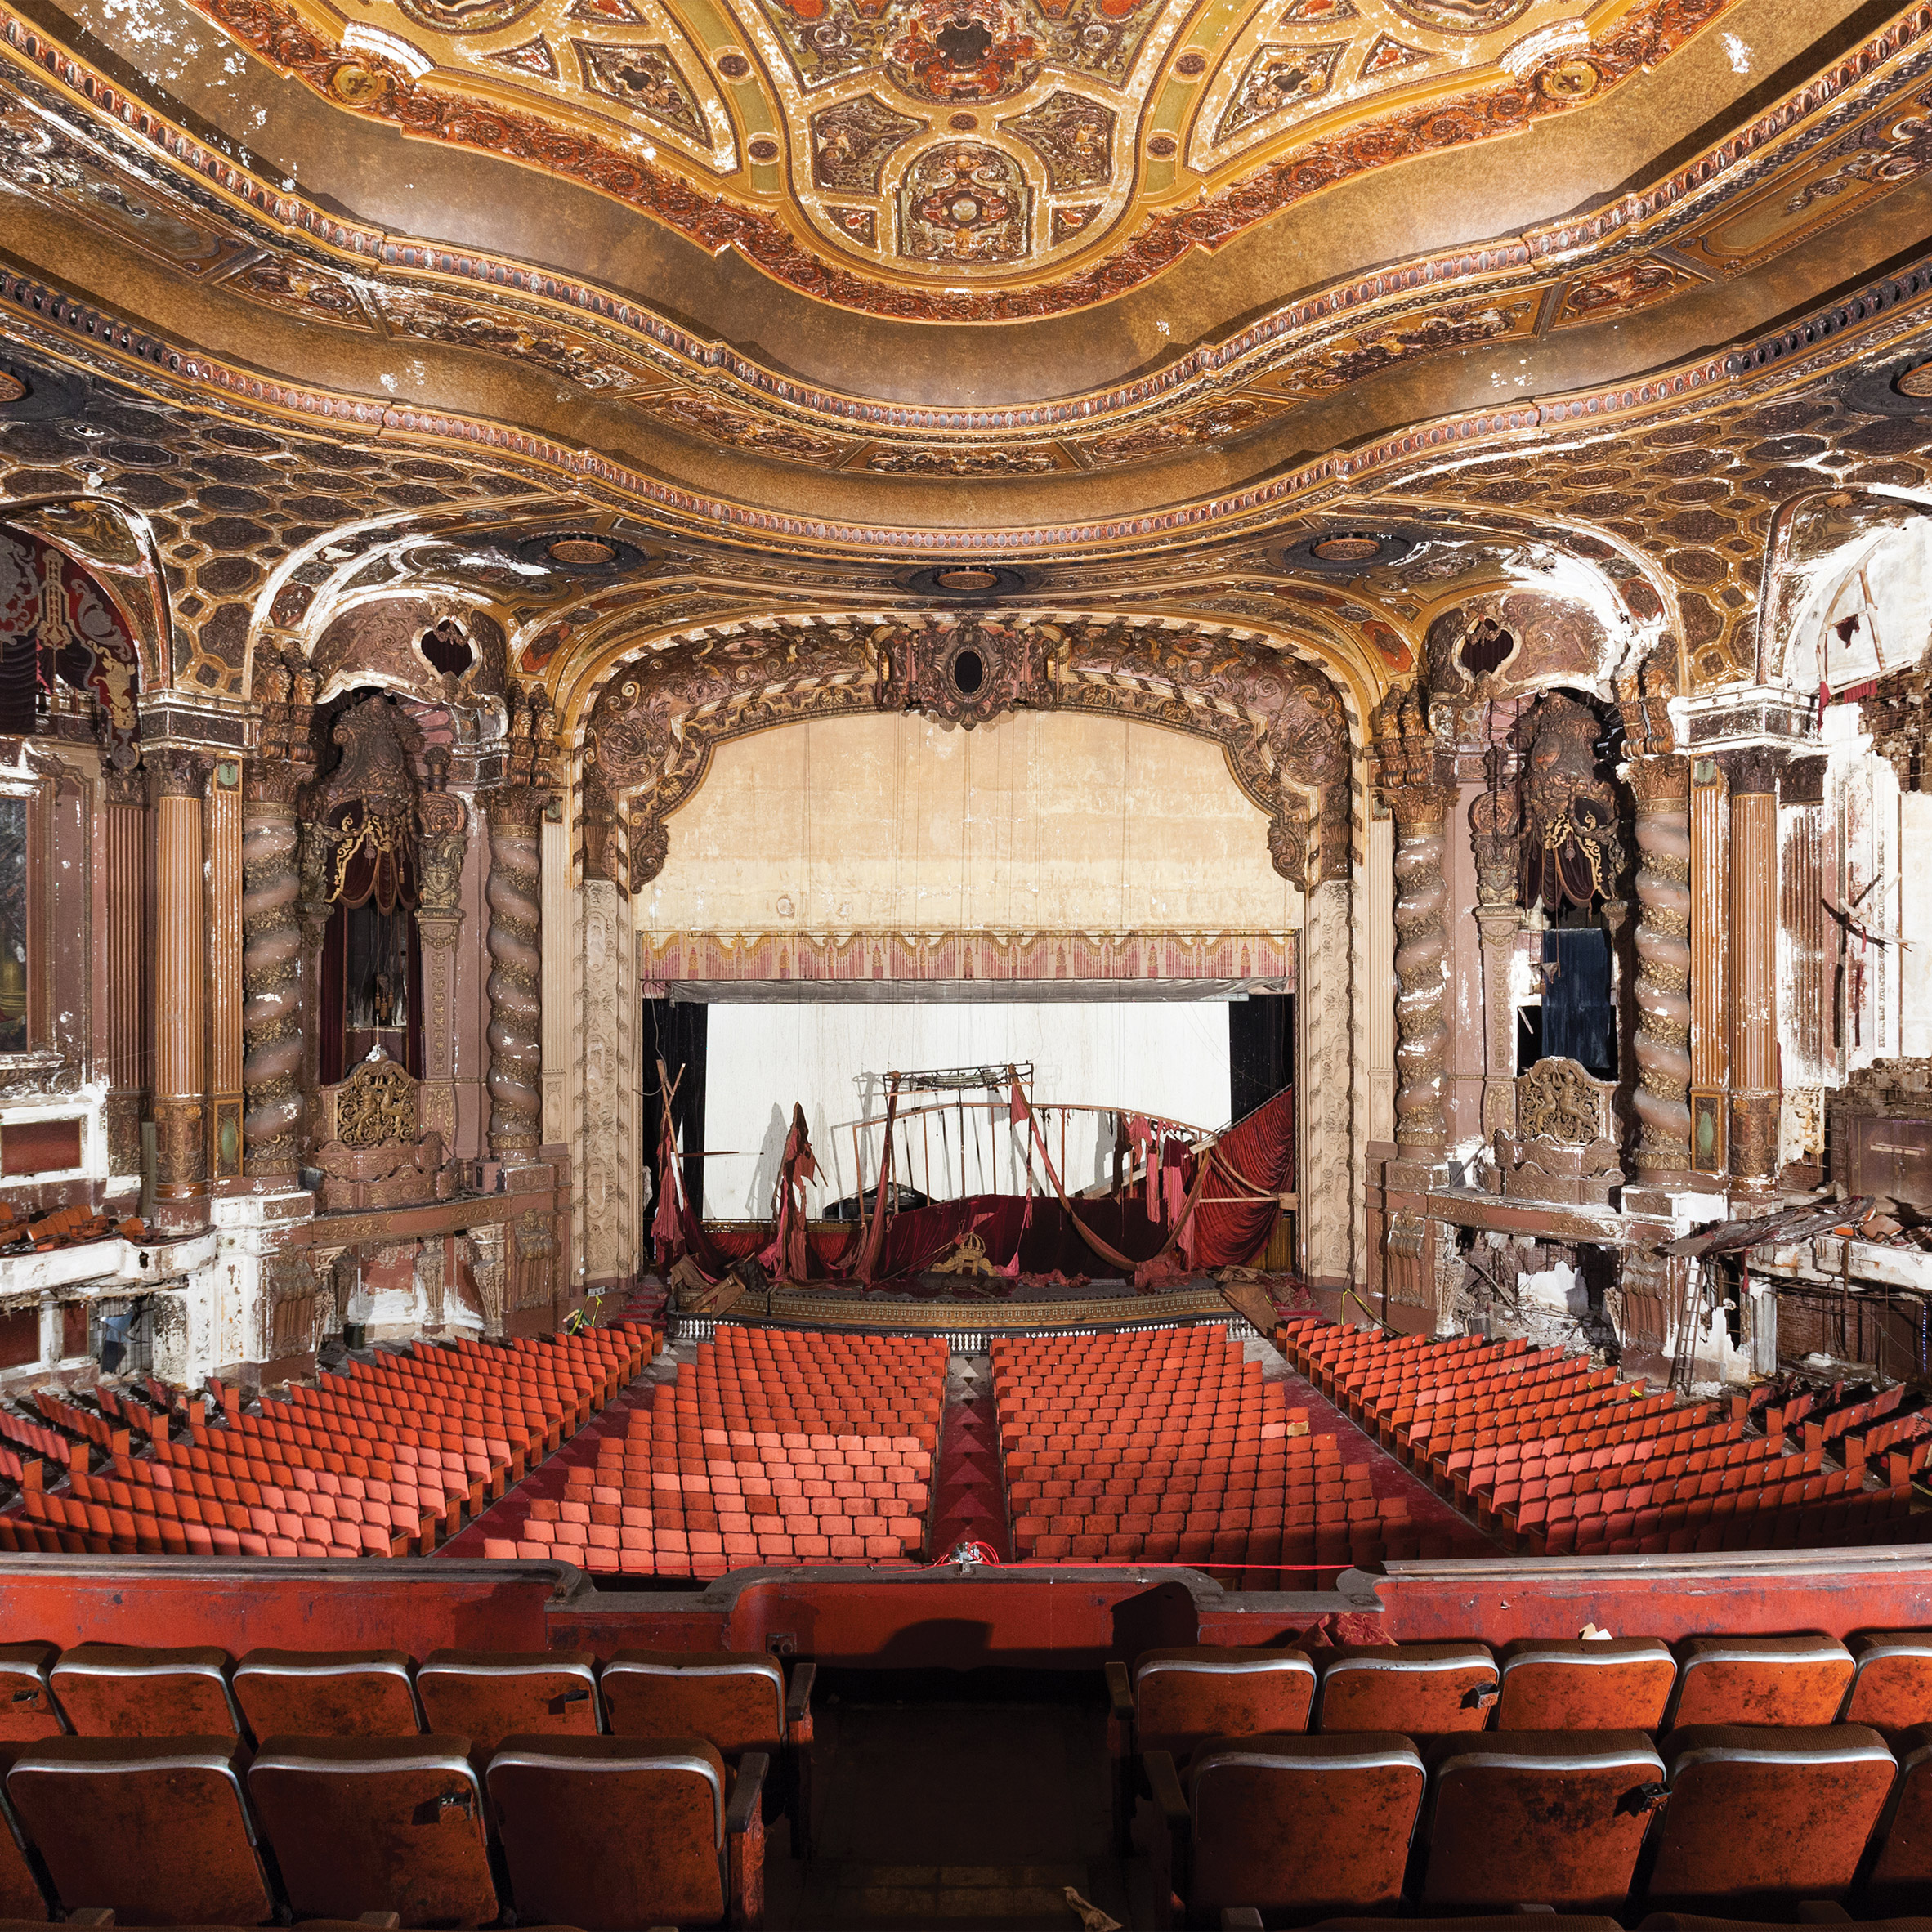 photography essays dezeen matt lambros after the final curtain photographs show america s forgotten movie theatres